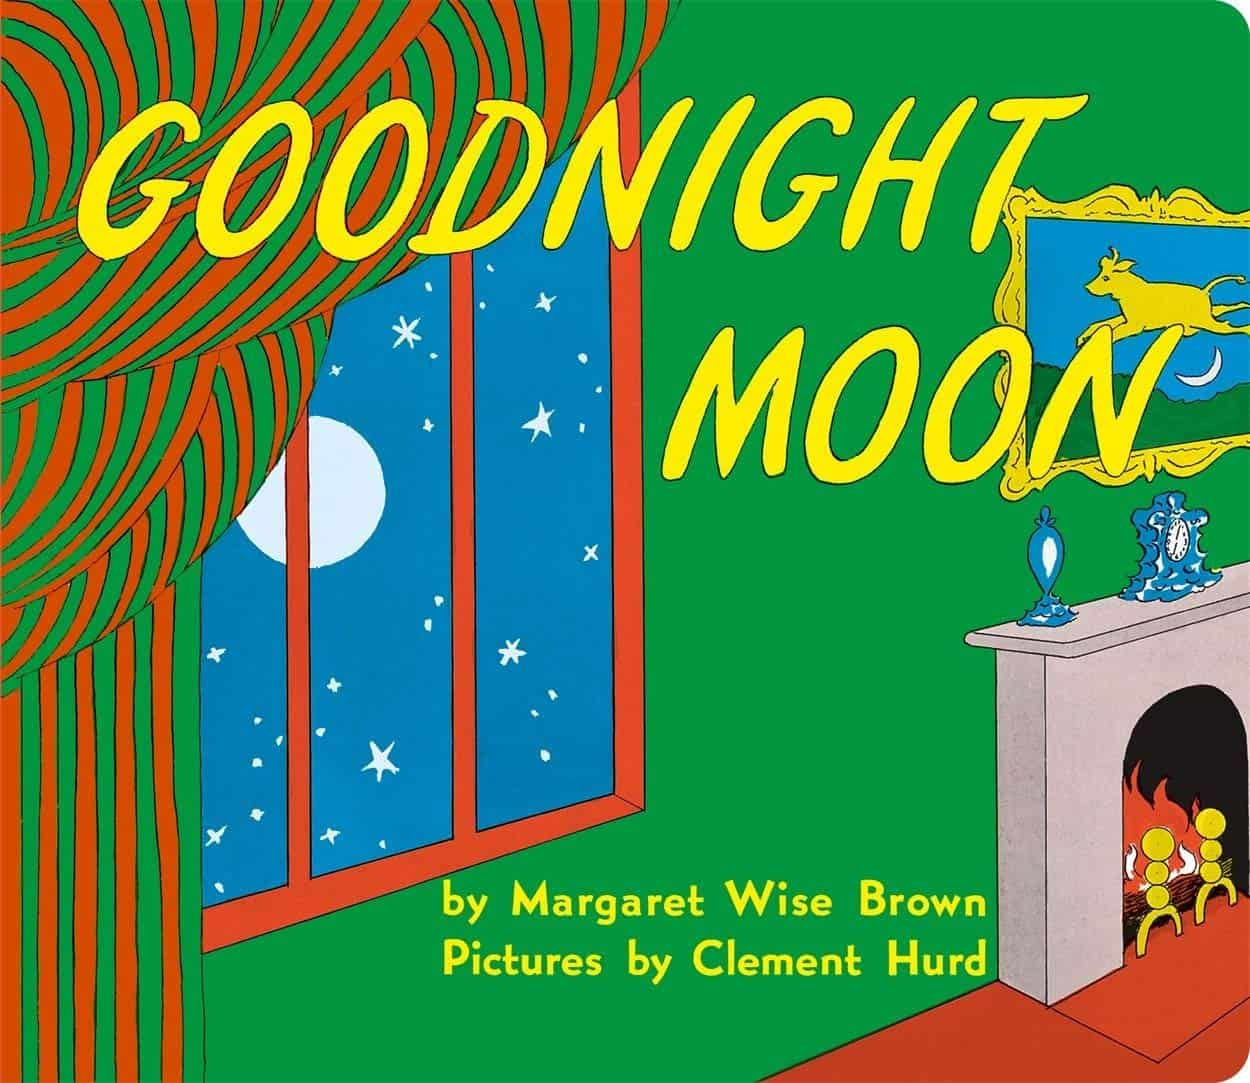 Goodnight Moon by Margaret Wise Brown.